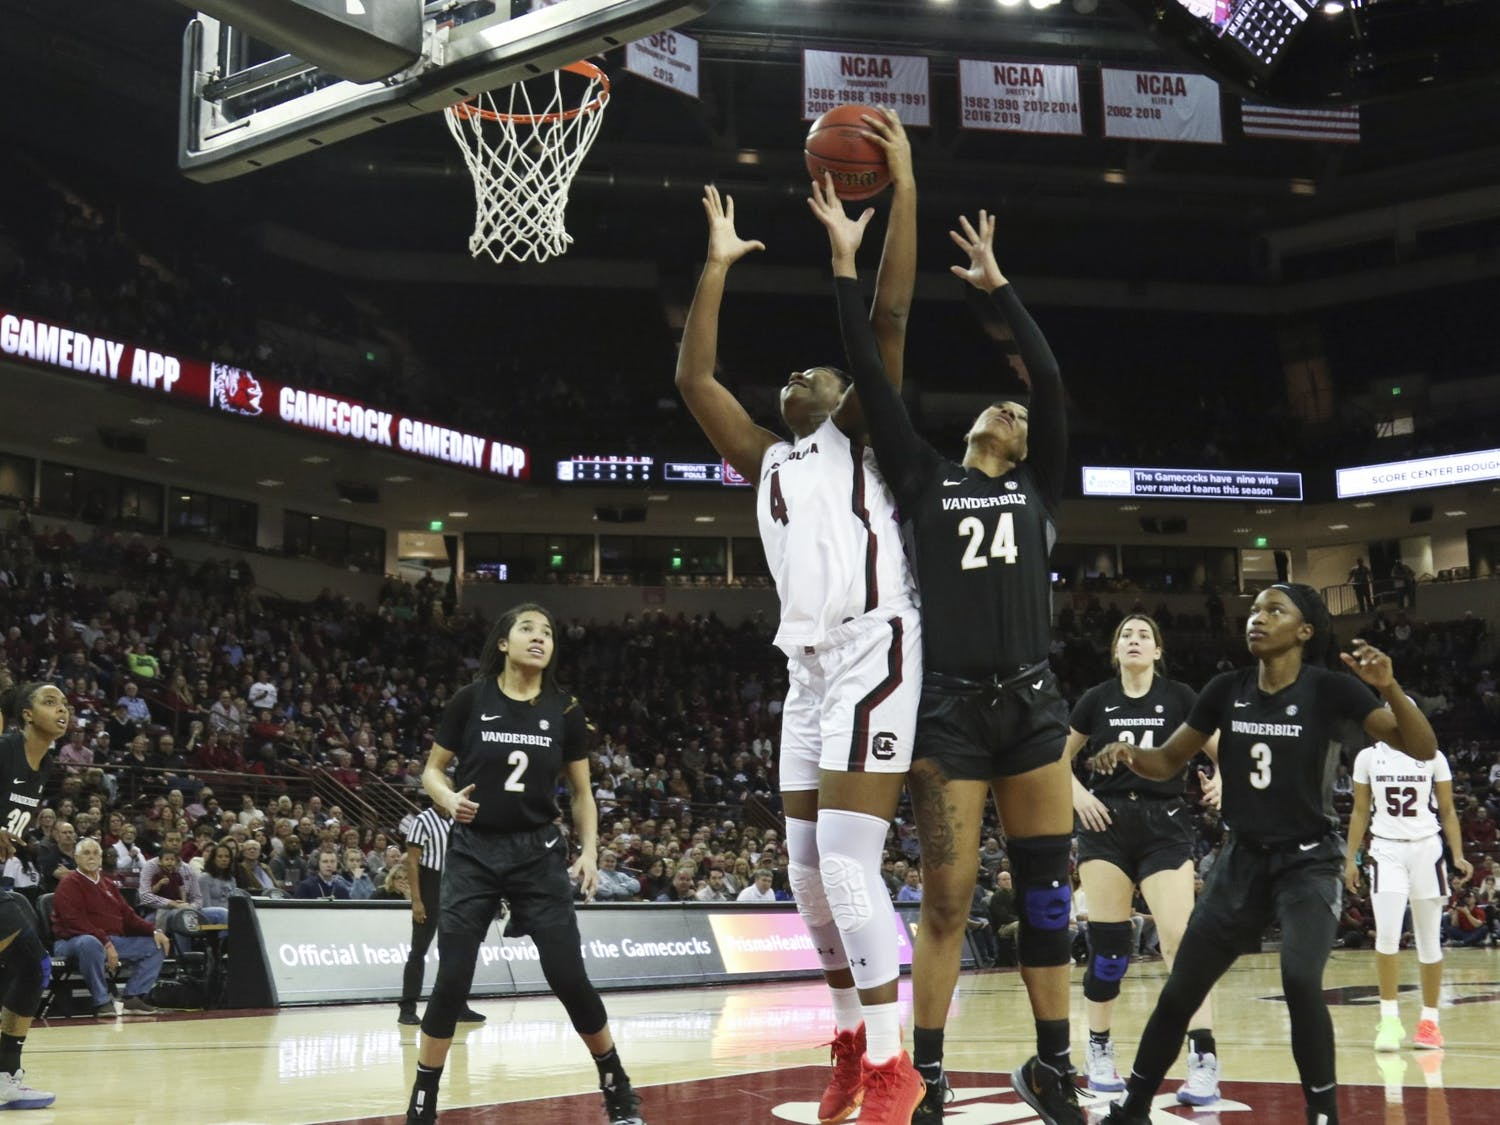 Sophomore forward Aliyah Boston goes up for a rebound in a 2020 game against Vanderbilt. The Gamecocks beat the Commodores 106-43 in Nashville on Thursday.